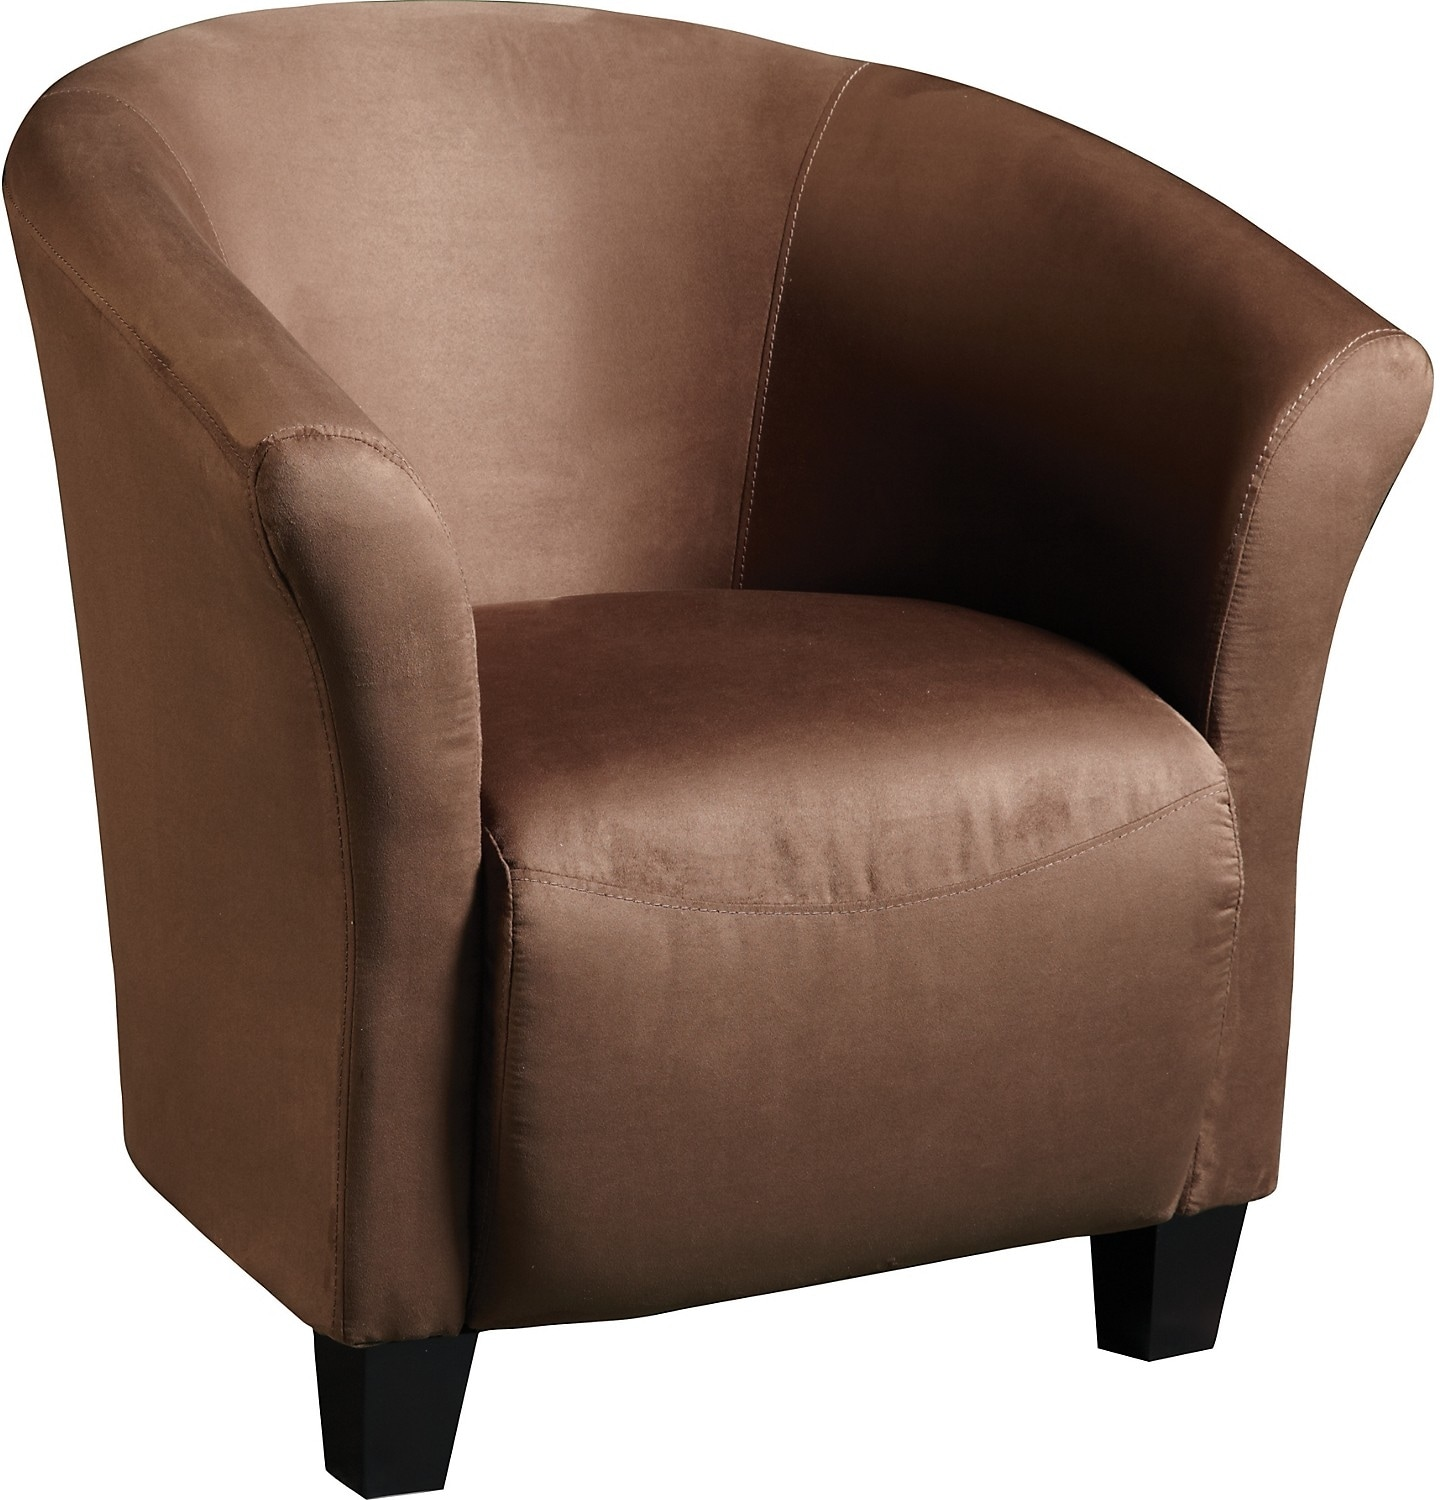 Chocolate Microsuede Tub Chair